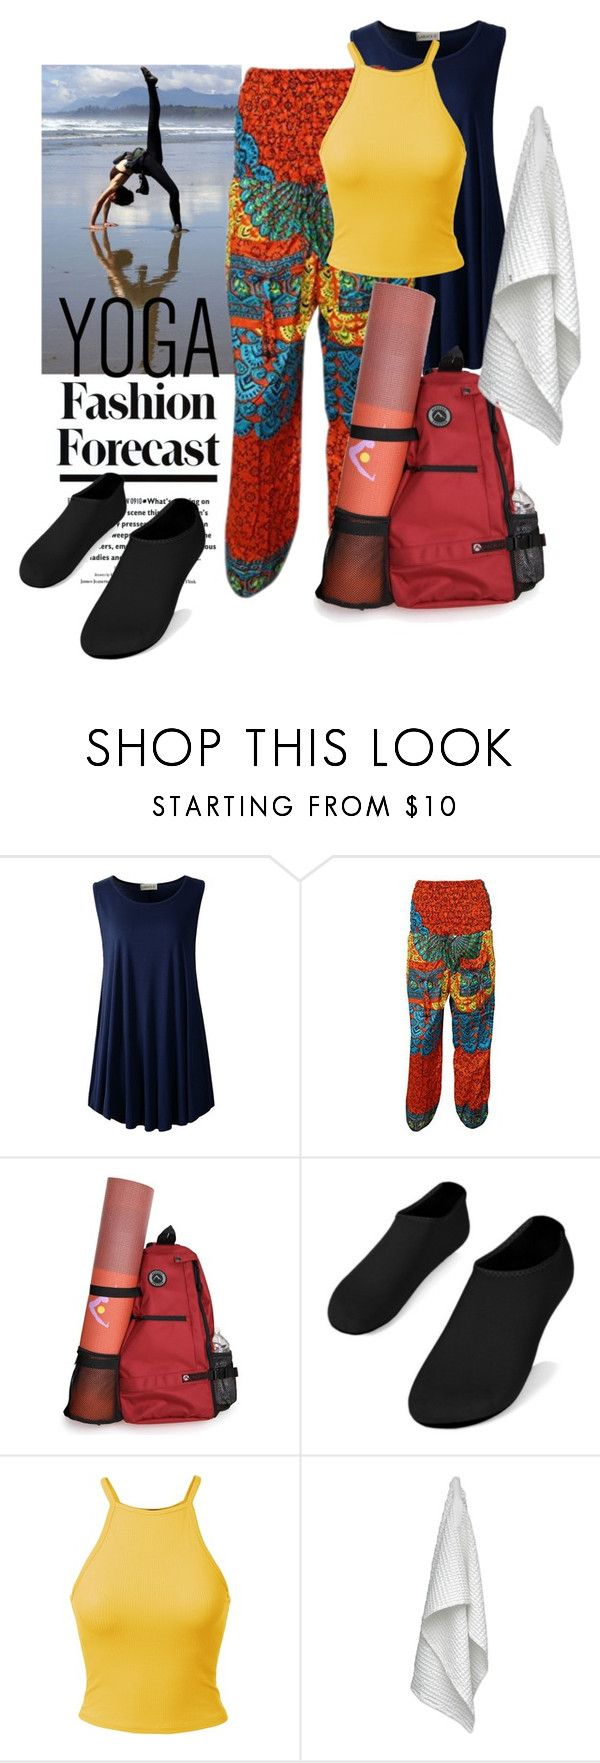 """""""sunnyside up👆"""" by daincyng ❤ liked on Polyvore featuring The Organic Company and yoga"""